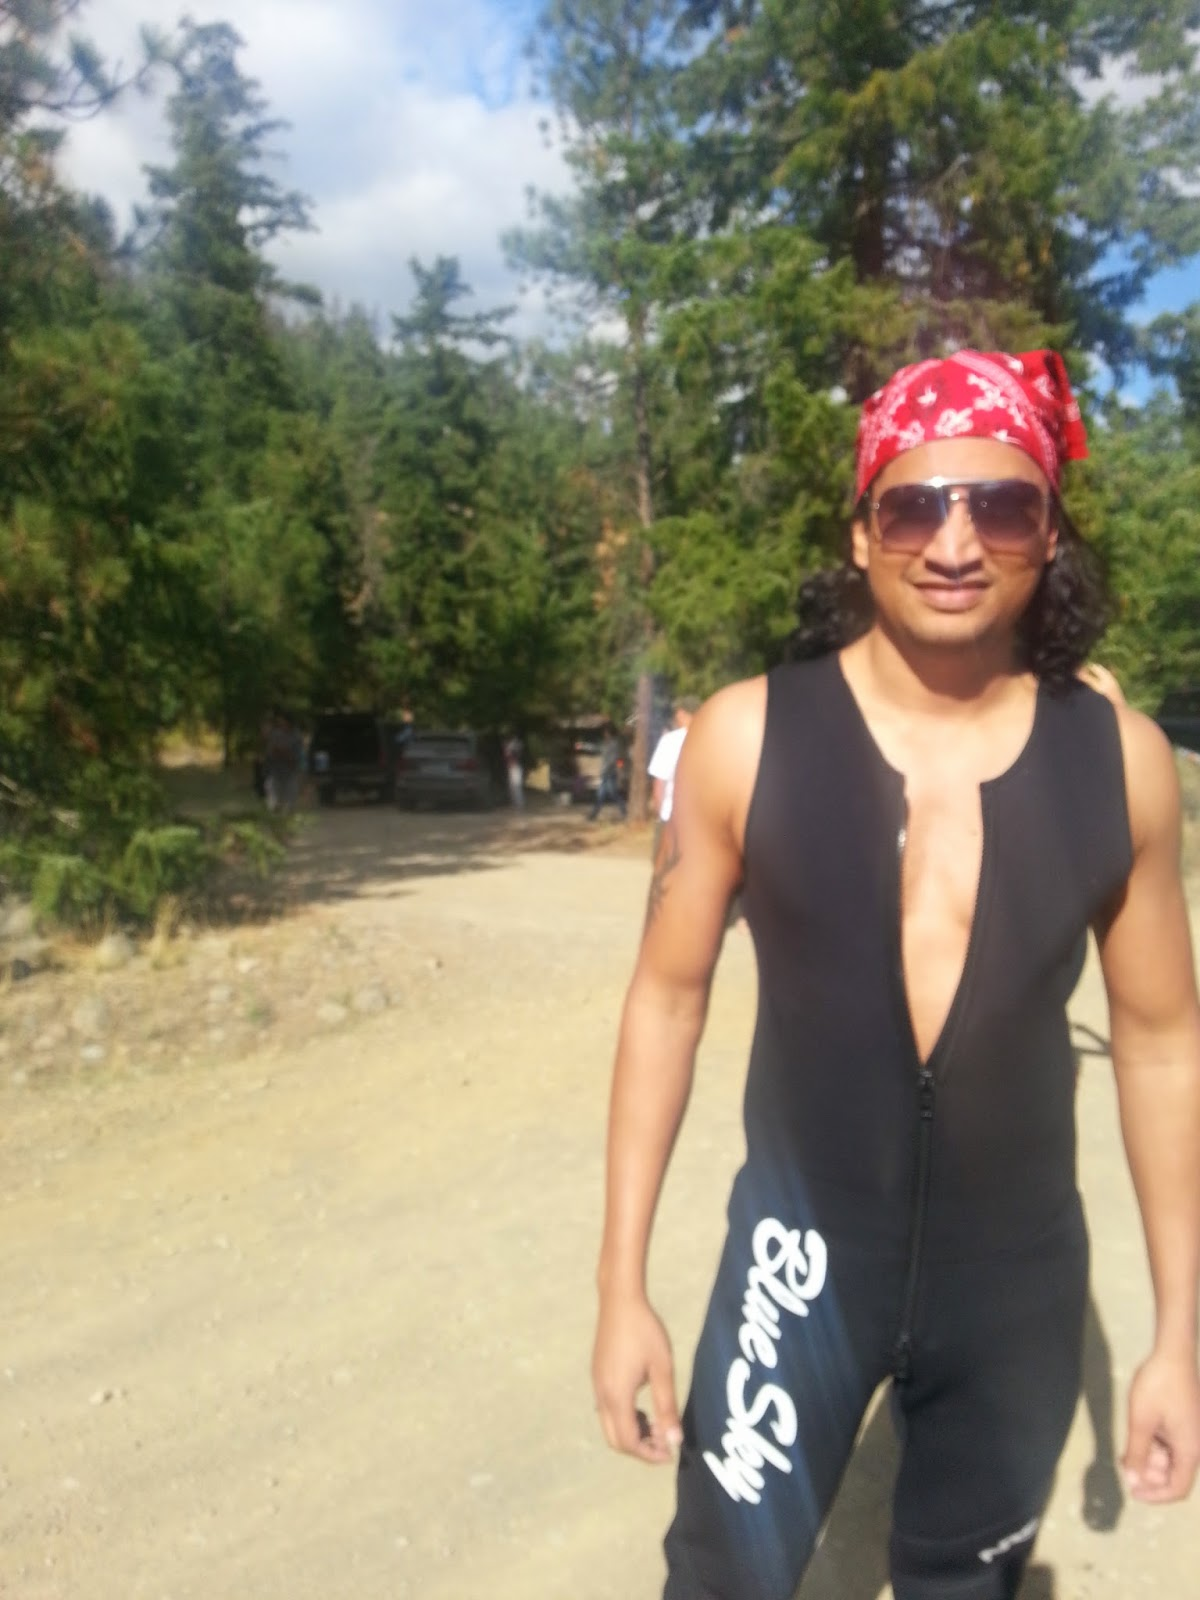 Best Rafting experience, Indian family outings in USA, Things to do near Seattle, Man in black wet suits